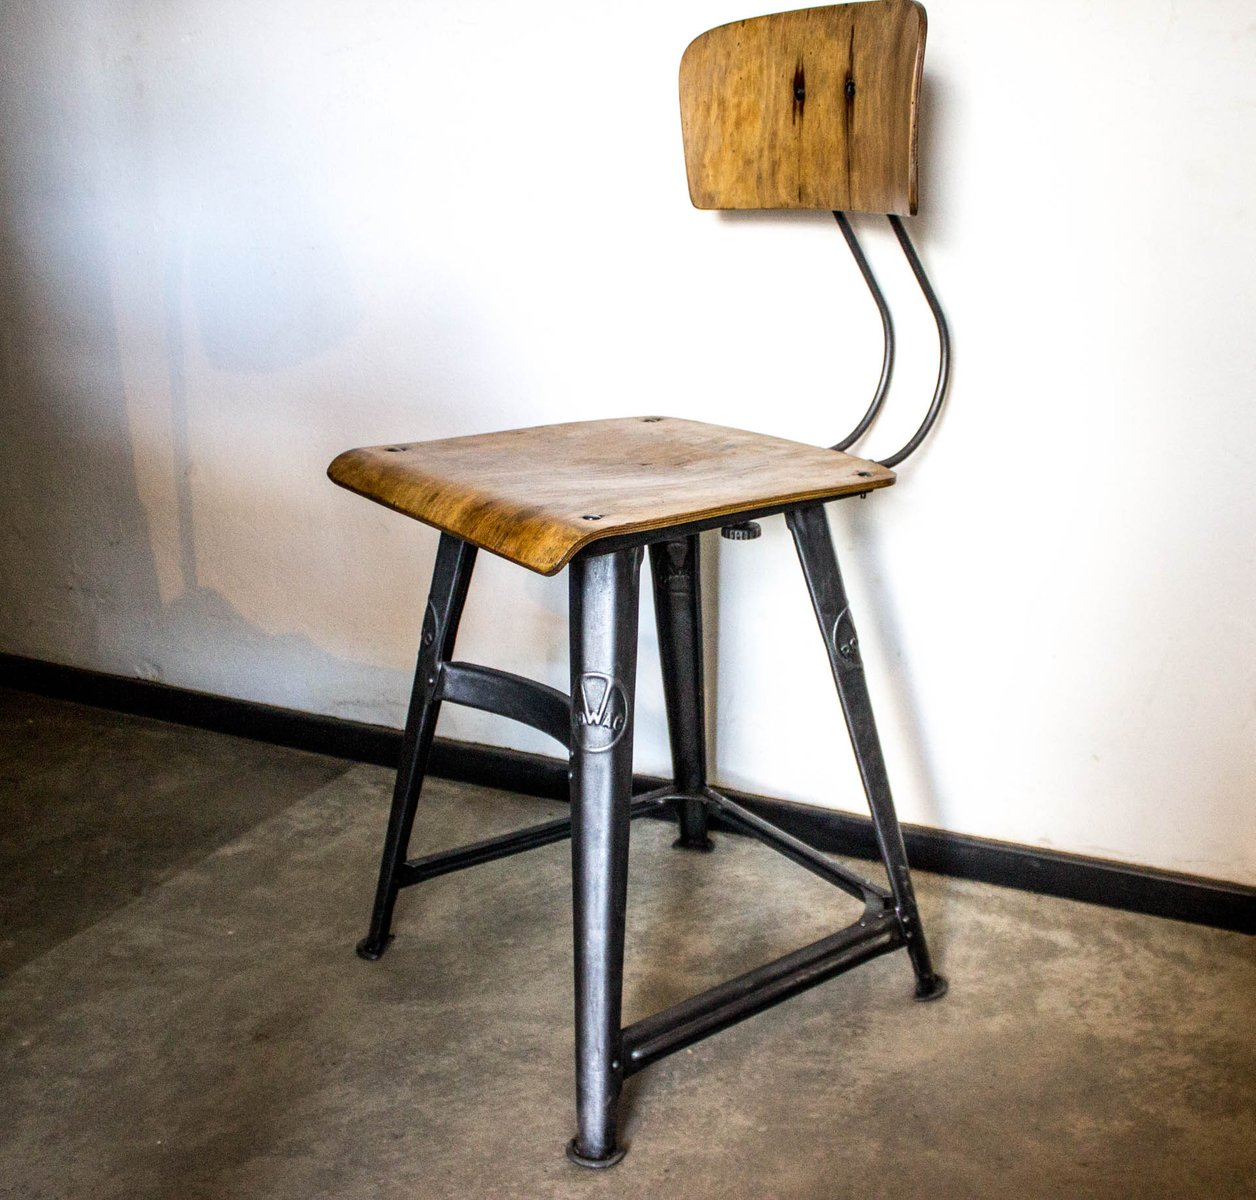 Vintage Desk Chair from Rowac - Vintage Desk Chair From Rowac For Sale At Pamono